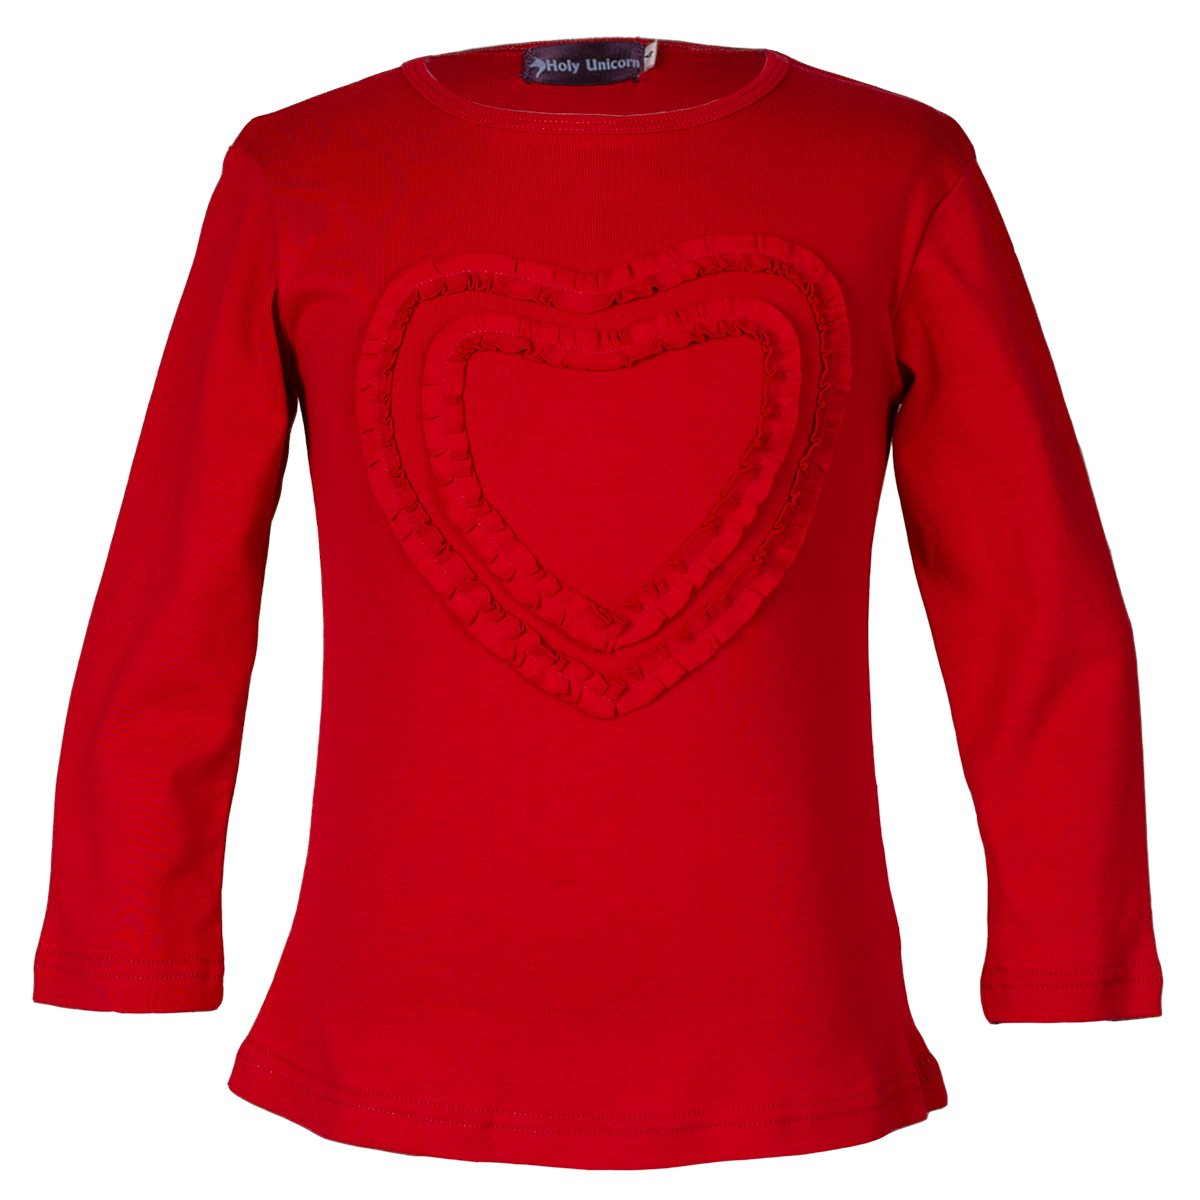 Girls' Ruffled Love Heart Long Sleeve Tee Shirts Top